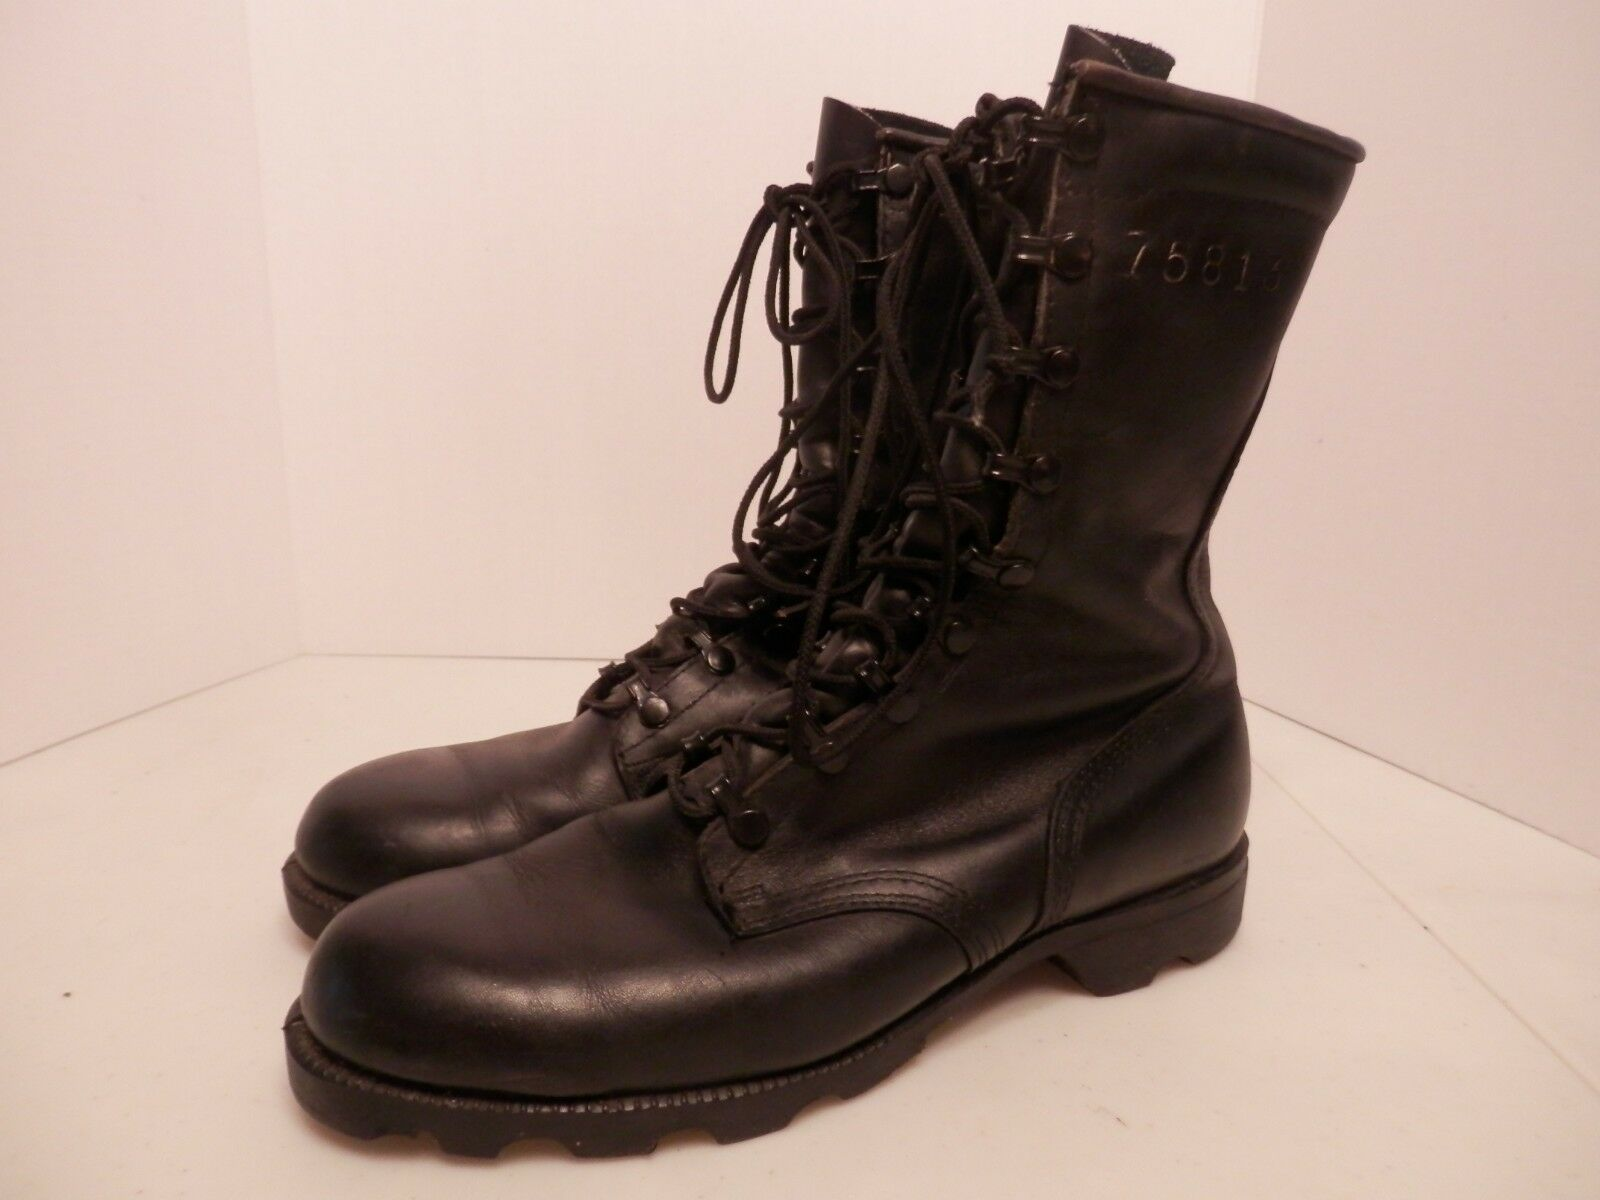 6c31f113711 75813 Black Leather Lace Combat Boots-Size Condition-Free Ship 9.5R ...